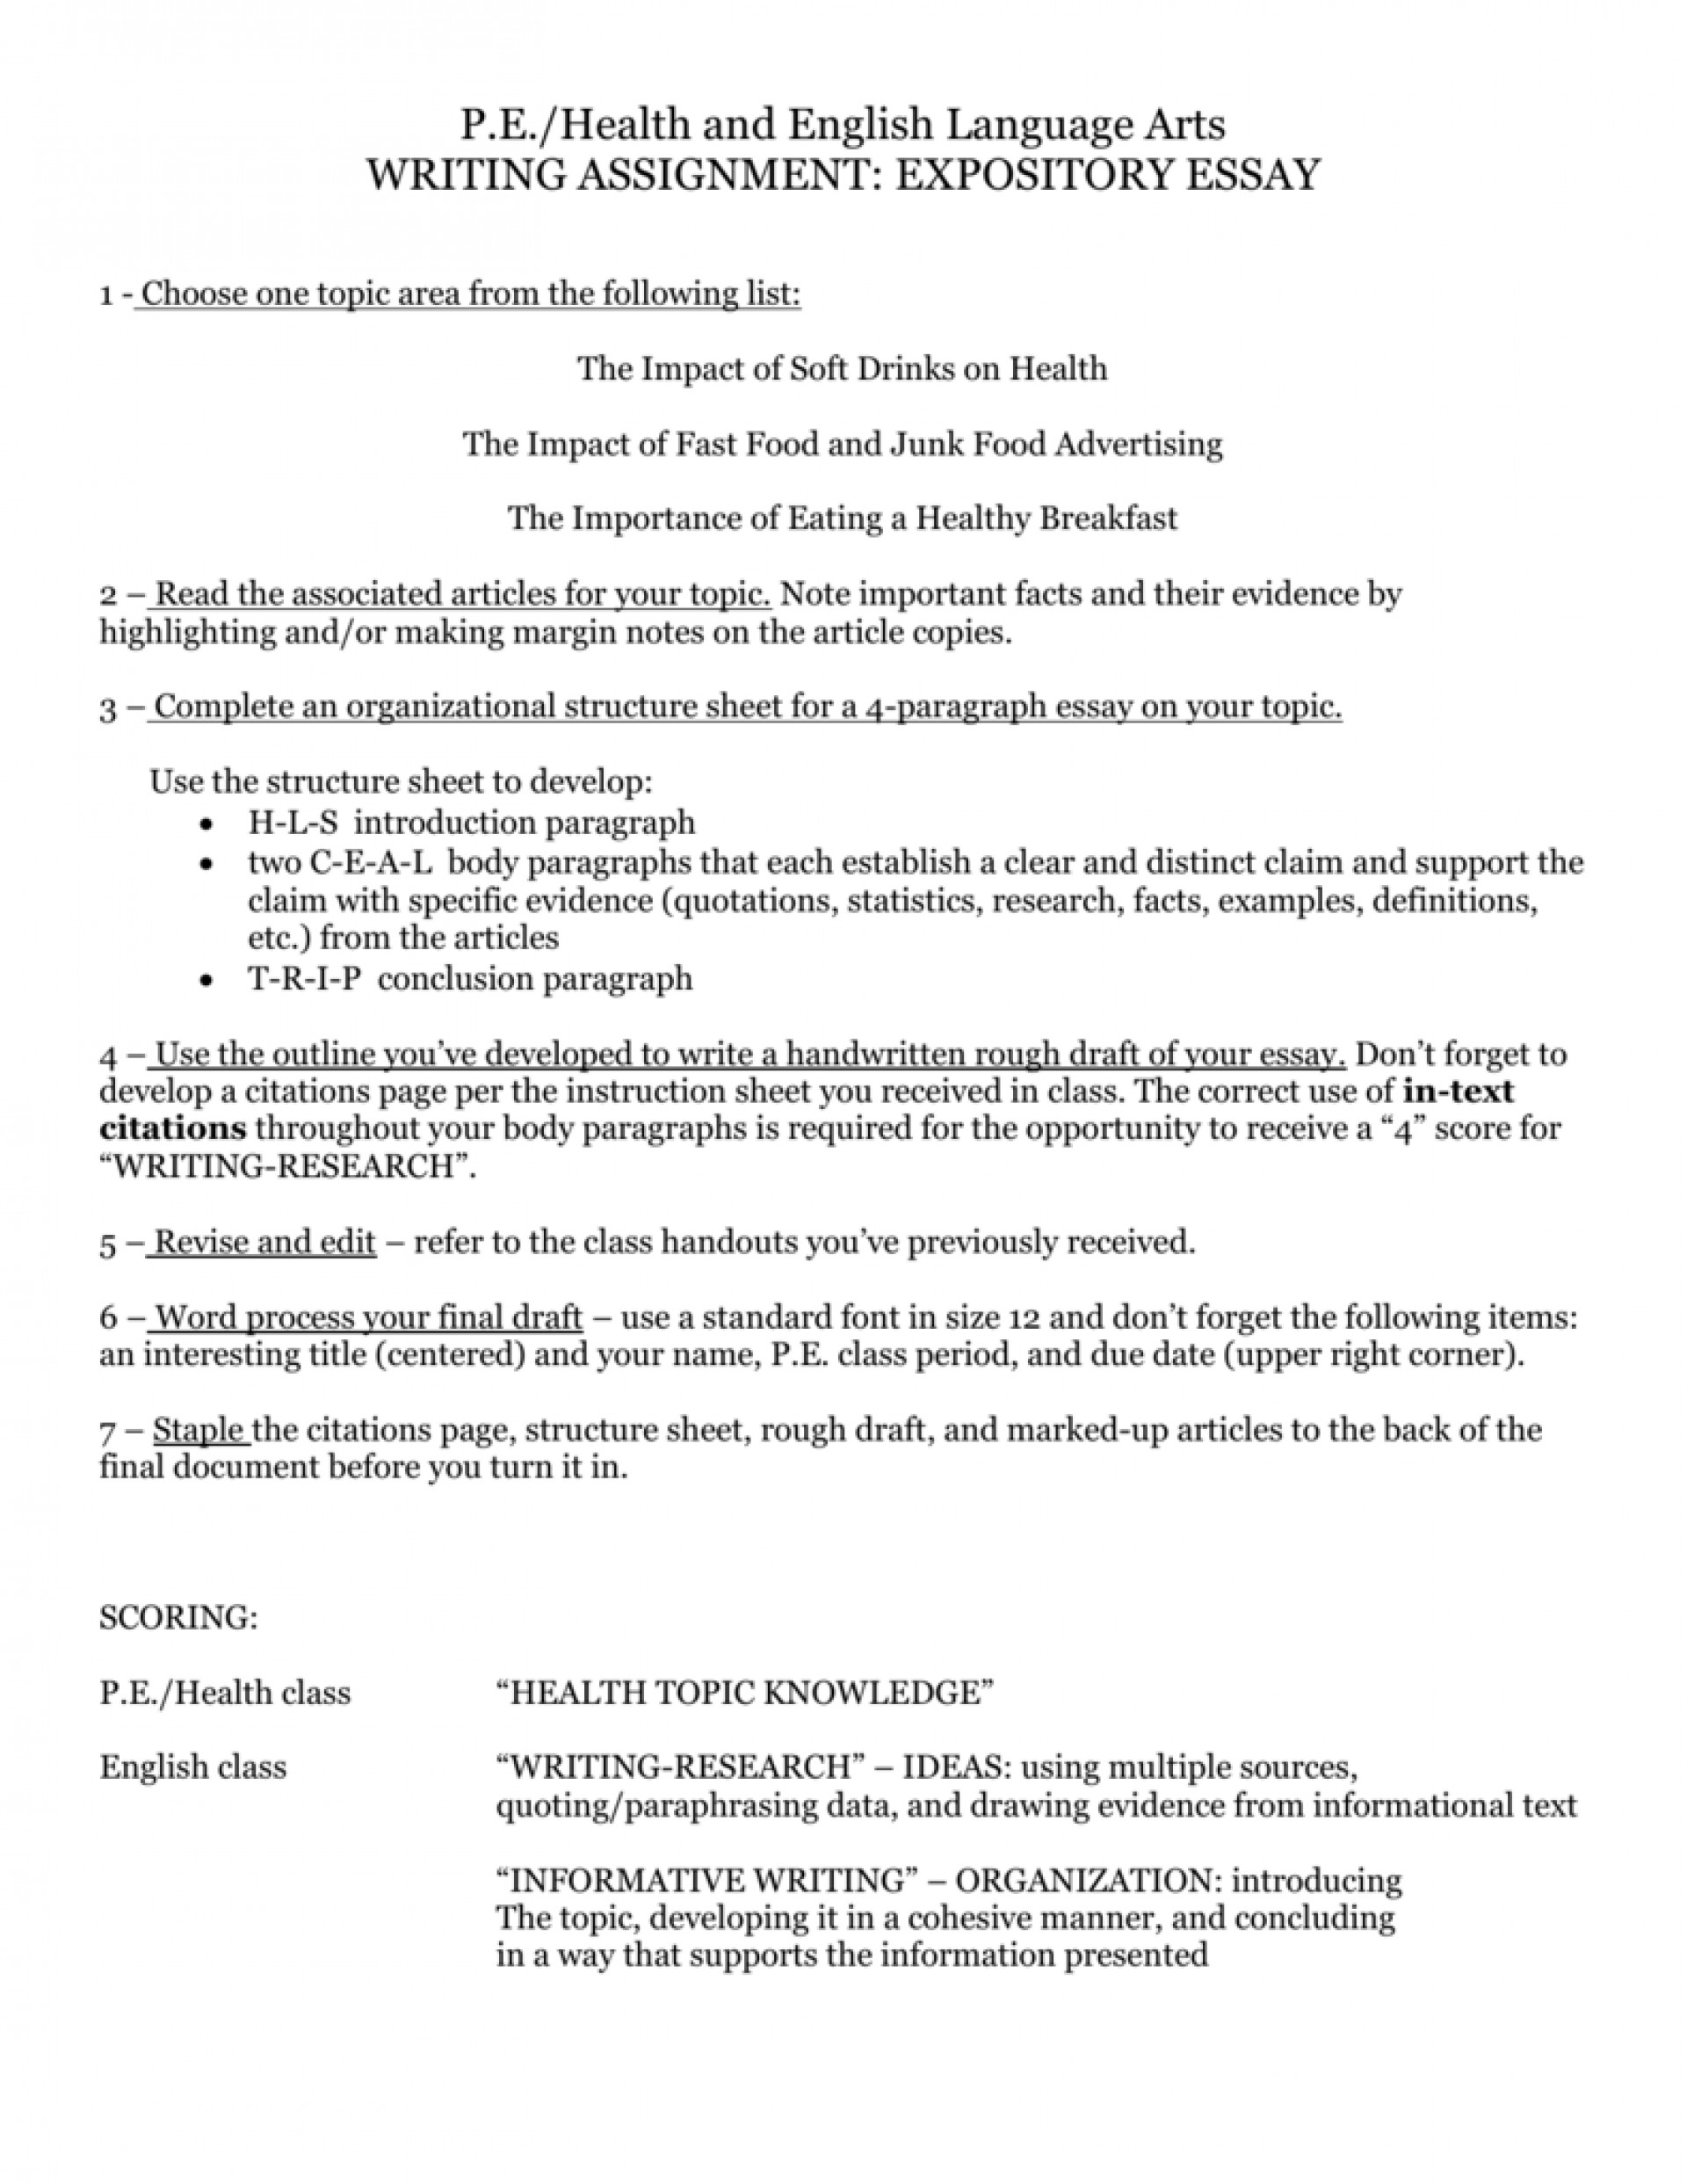 019 Essay Example Paragraph 008033053 1 Phenomenal 4 Samples Outline Format Structure 1920